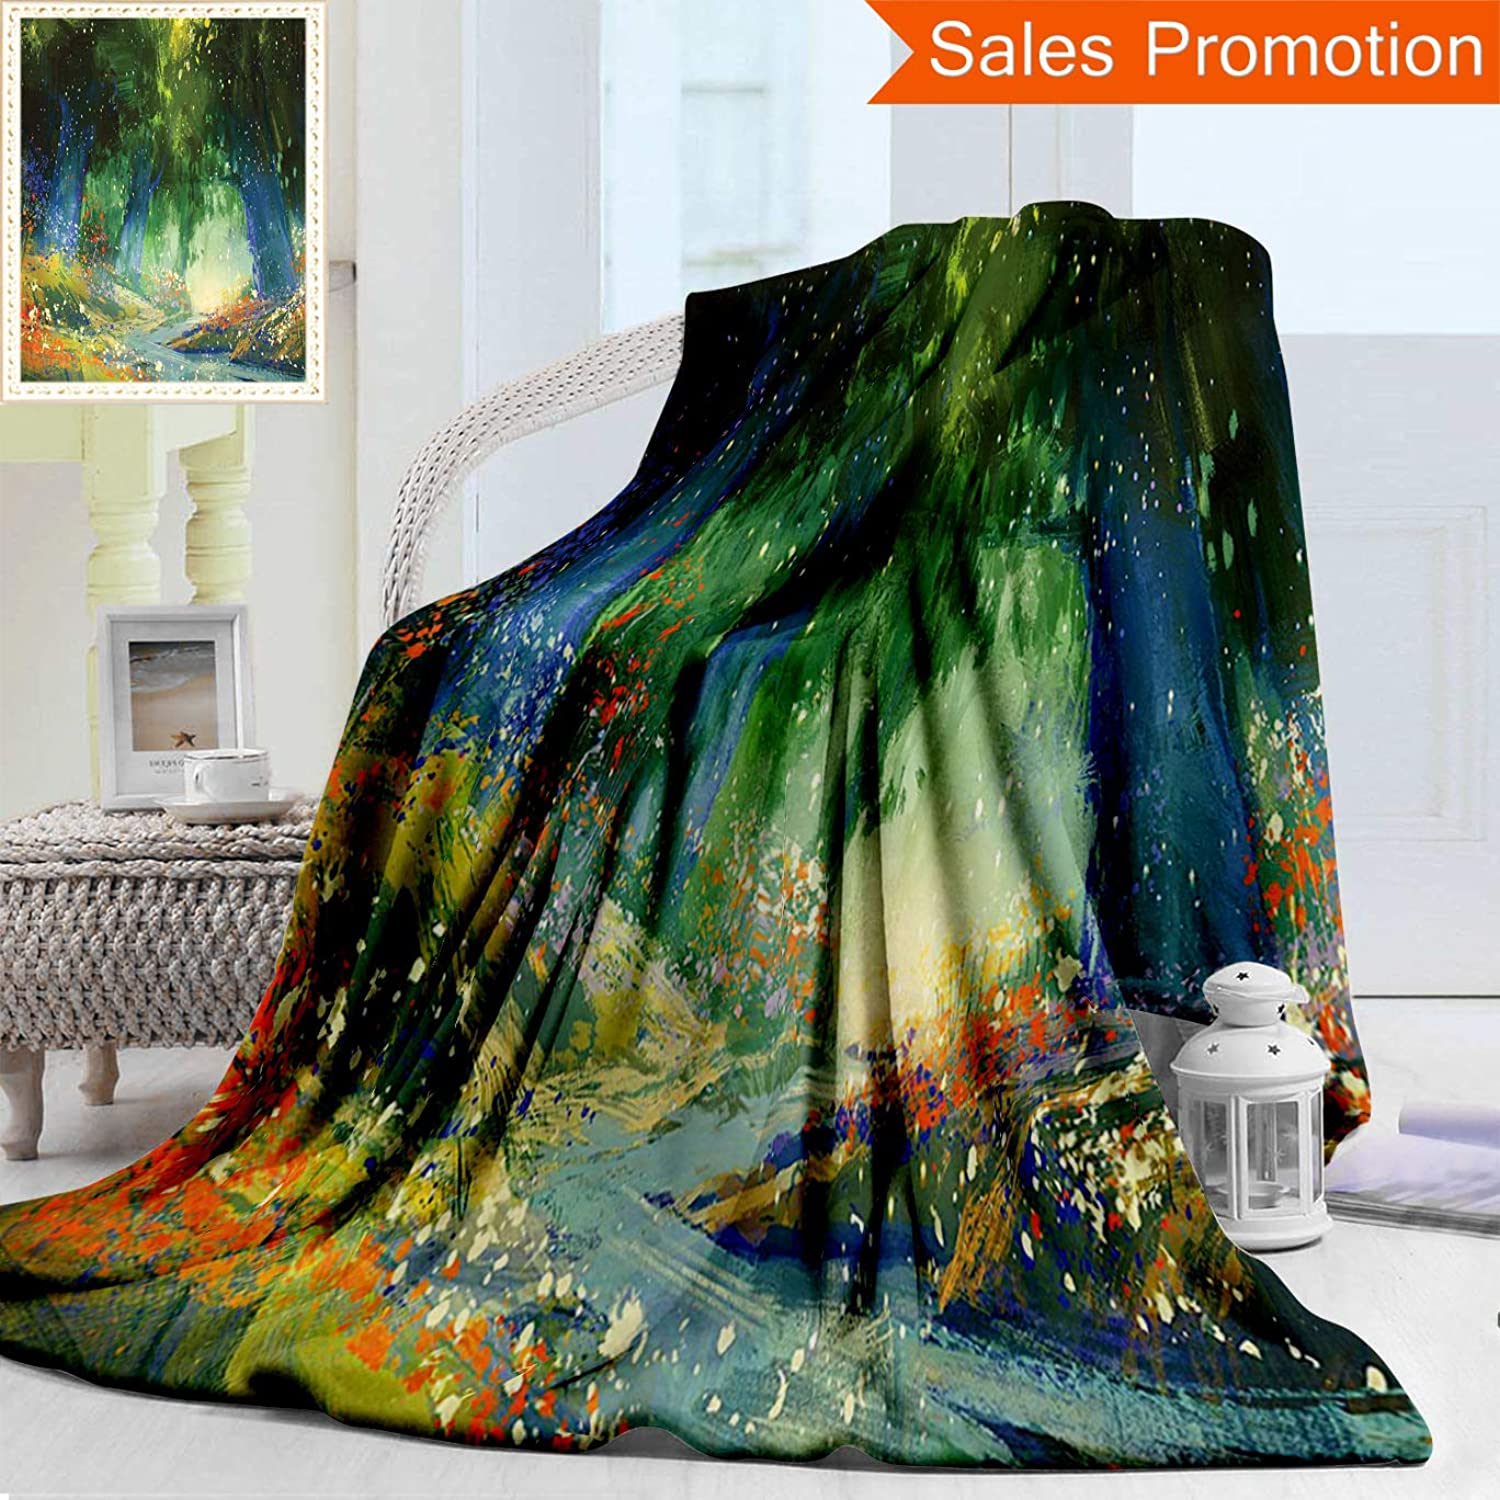 Unique Double Sides 3D Print Flannel Blanket Fantasy Art House Decor Magical Scene with Flower Field with Mist Lights Fairy Tale R Cozy Plush Supersoft Blankets for Couch Bed, Throw Blanket 50  x 60